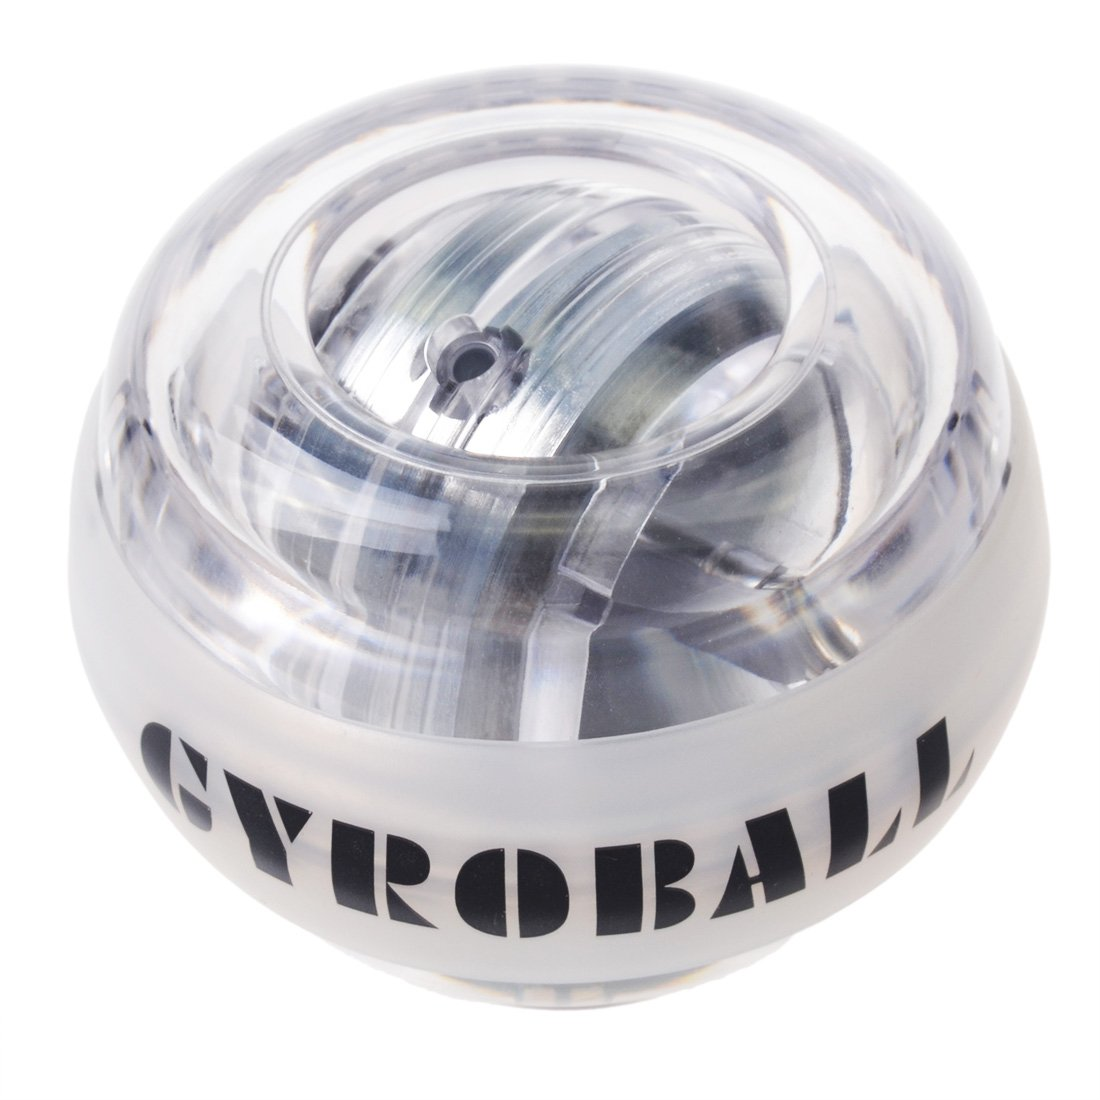 RESBO Wrist Trainer Workout Ball Exerciser Hand Spinner Gyroscopic Ball Metal Type LED Light with LCD Display Speedometer